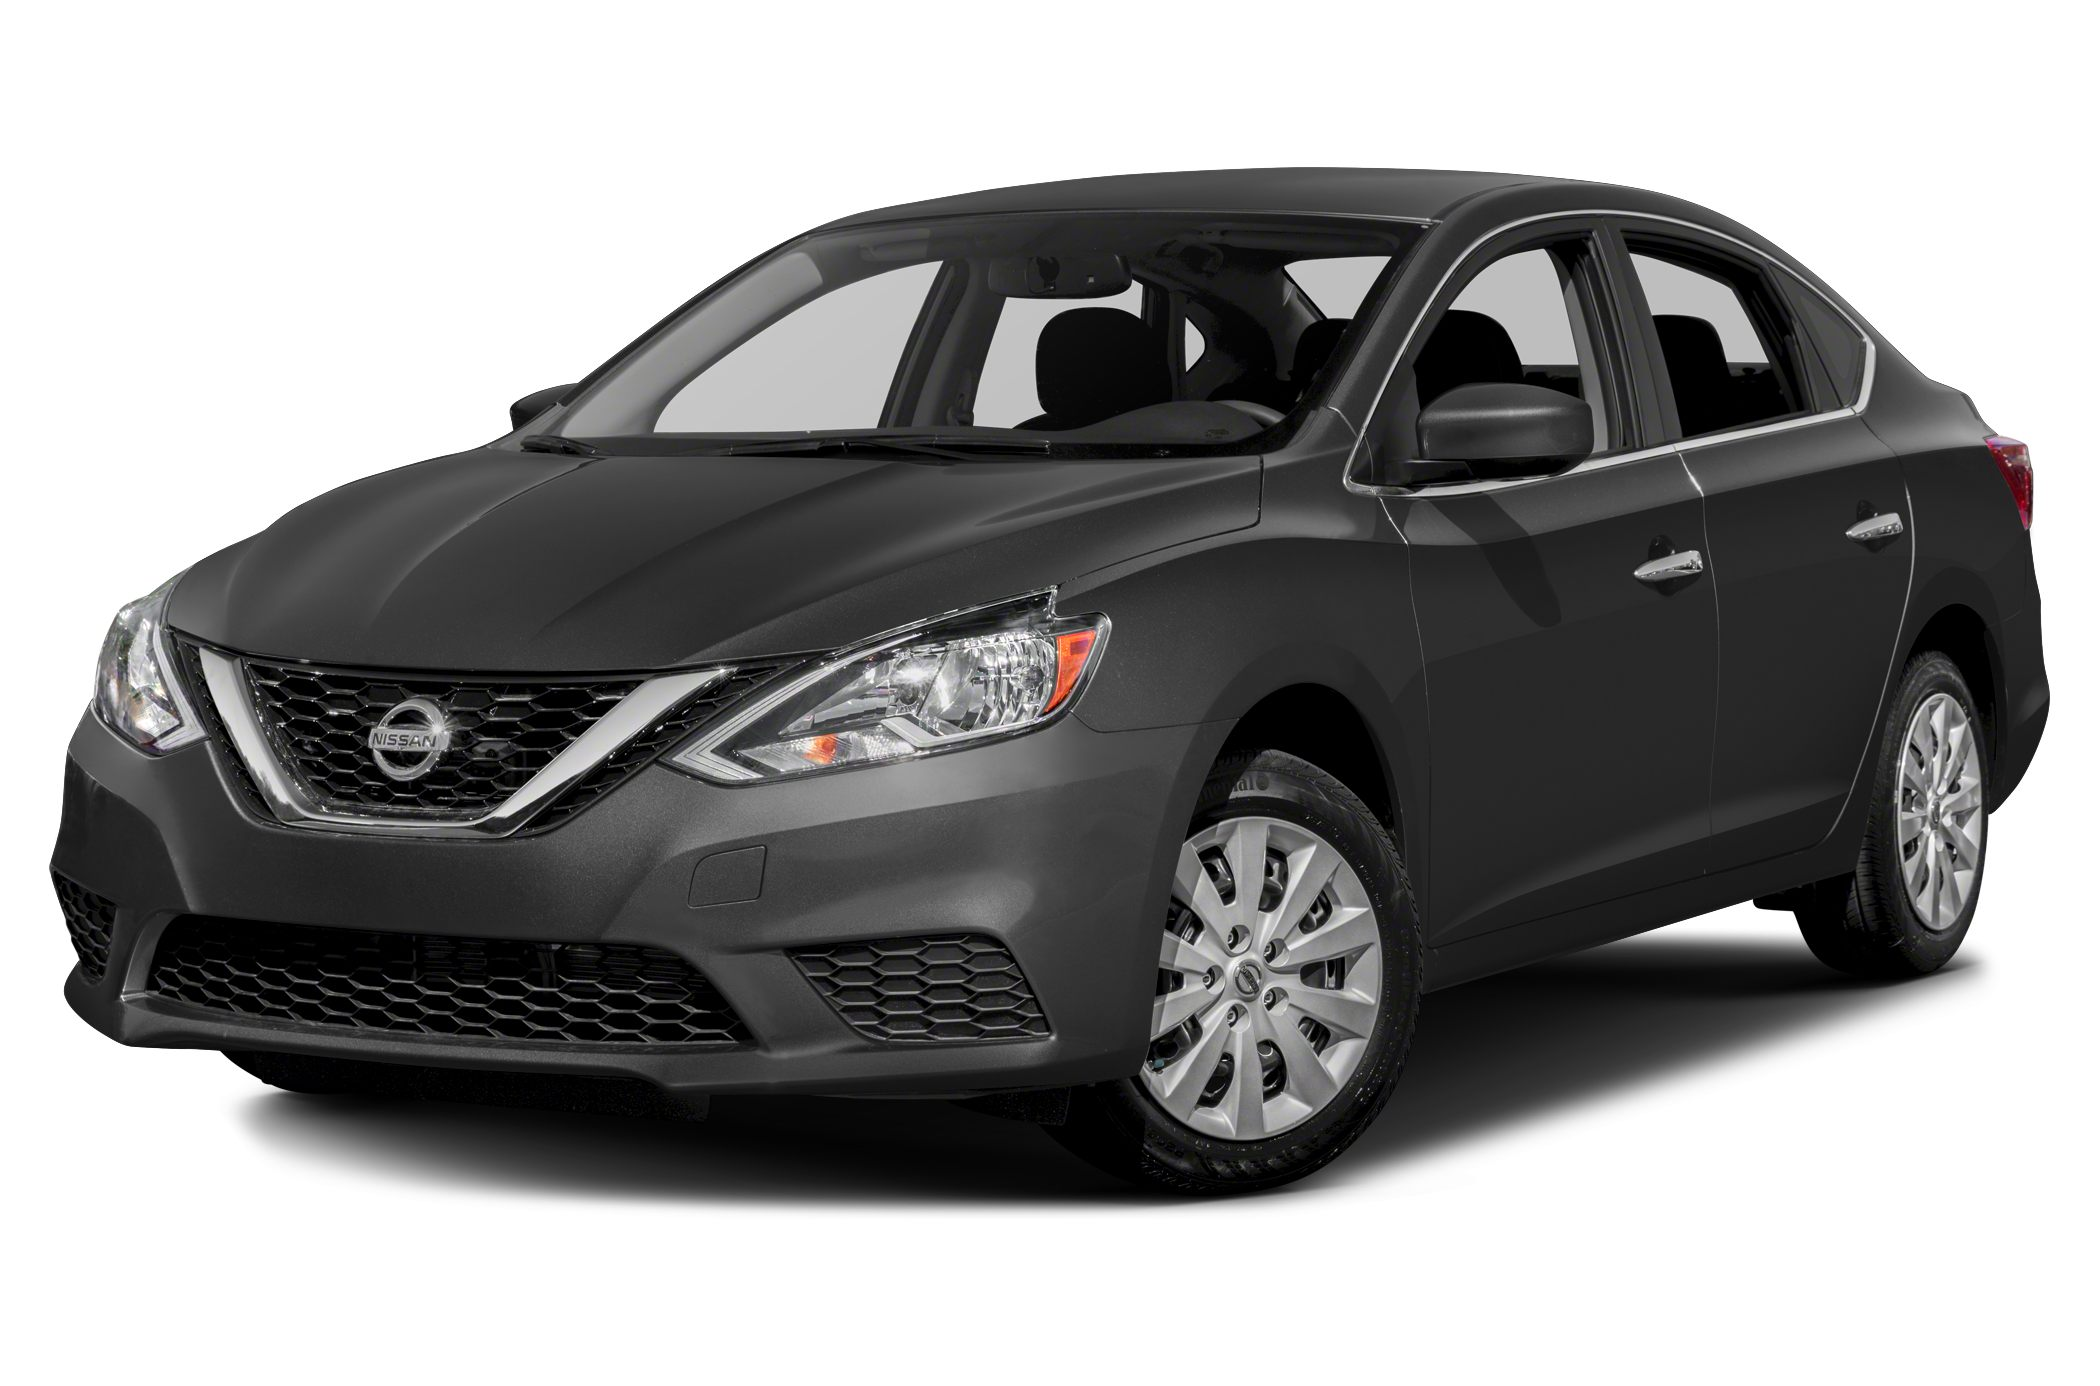 Used Cars for Sale In Georgia Under 2000 Elegant athens Ga Used Cars for Sale Less Than 2 000 Dollars